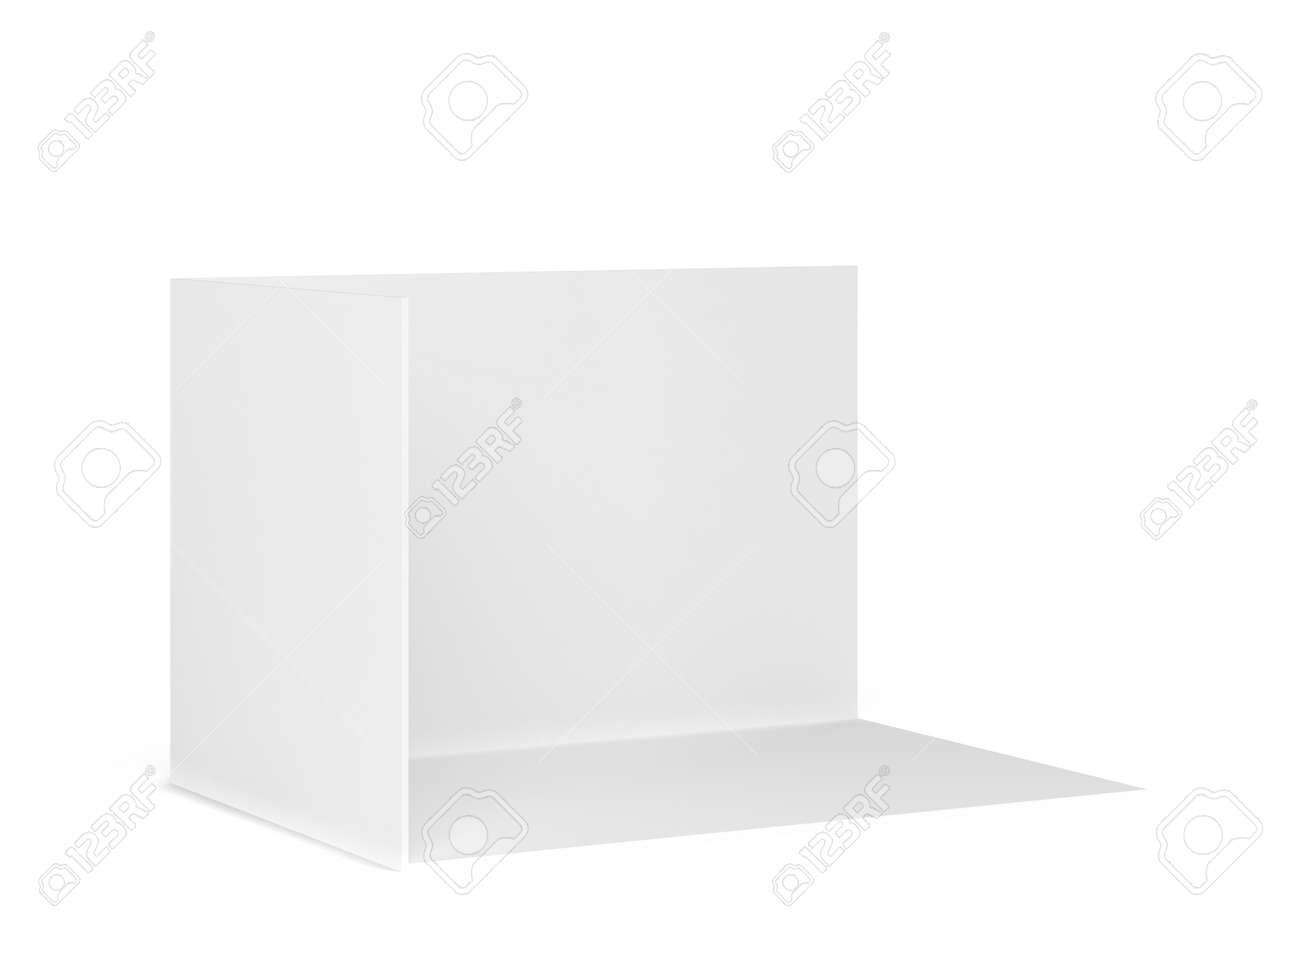 Simple tradeshow booth mockup. 3d illustration isolated on white background - 148671501